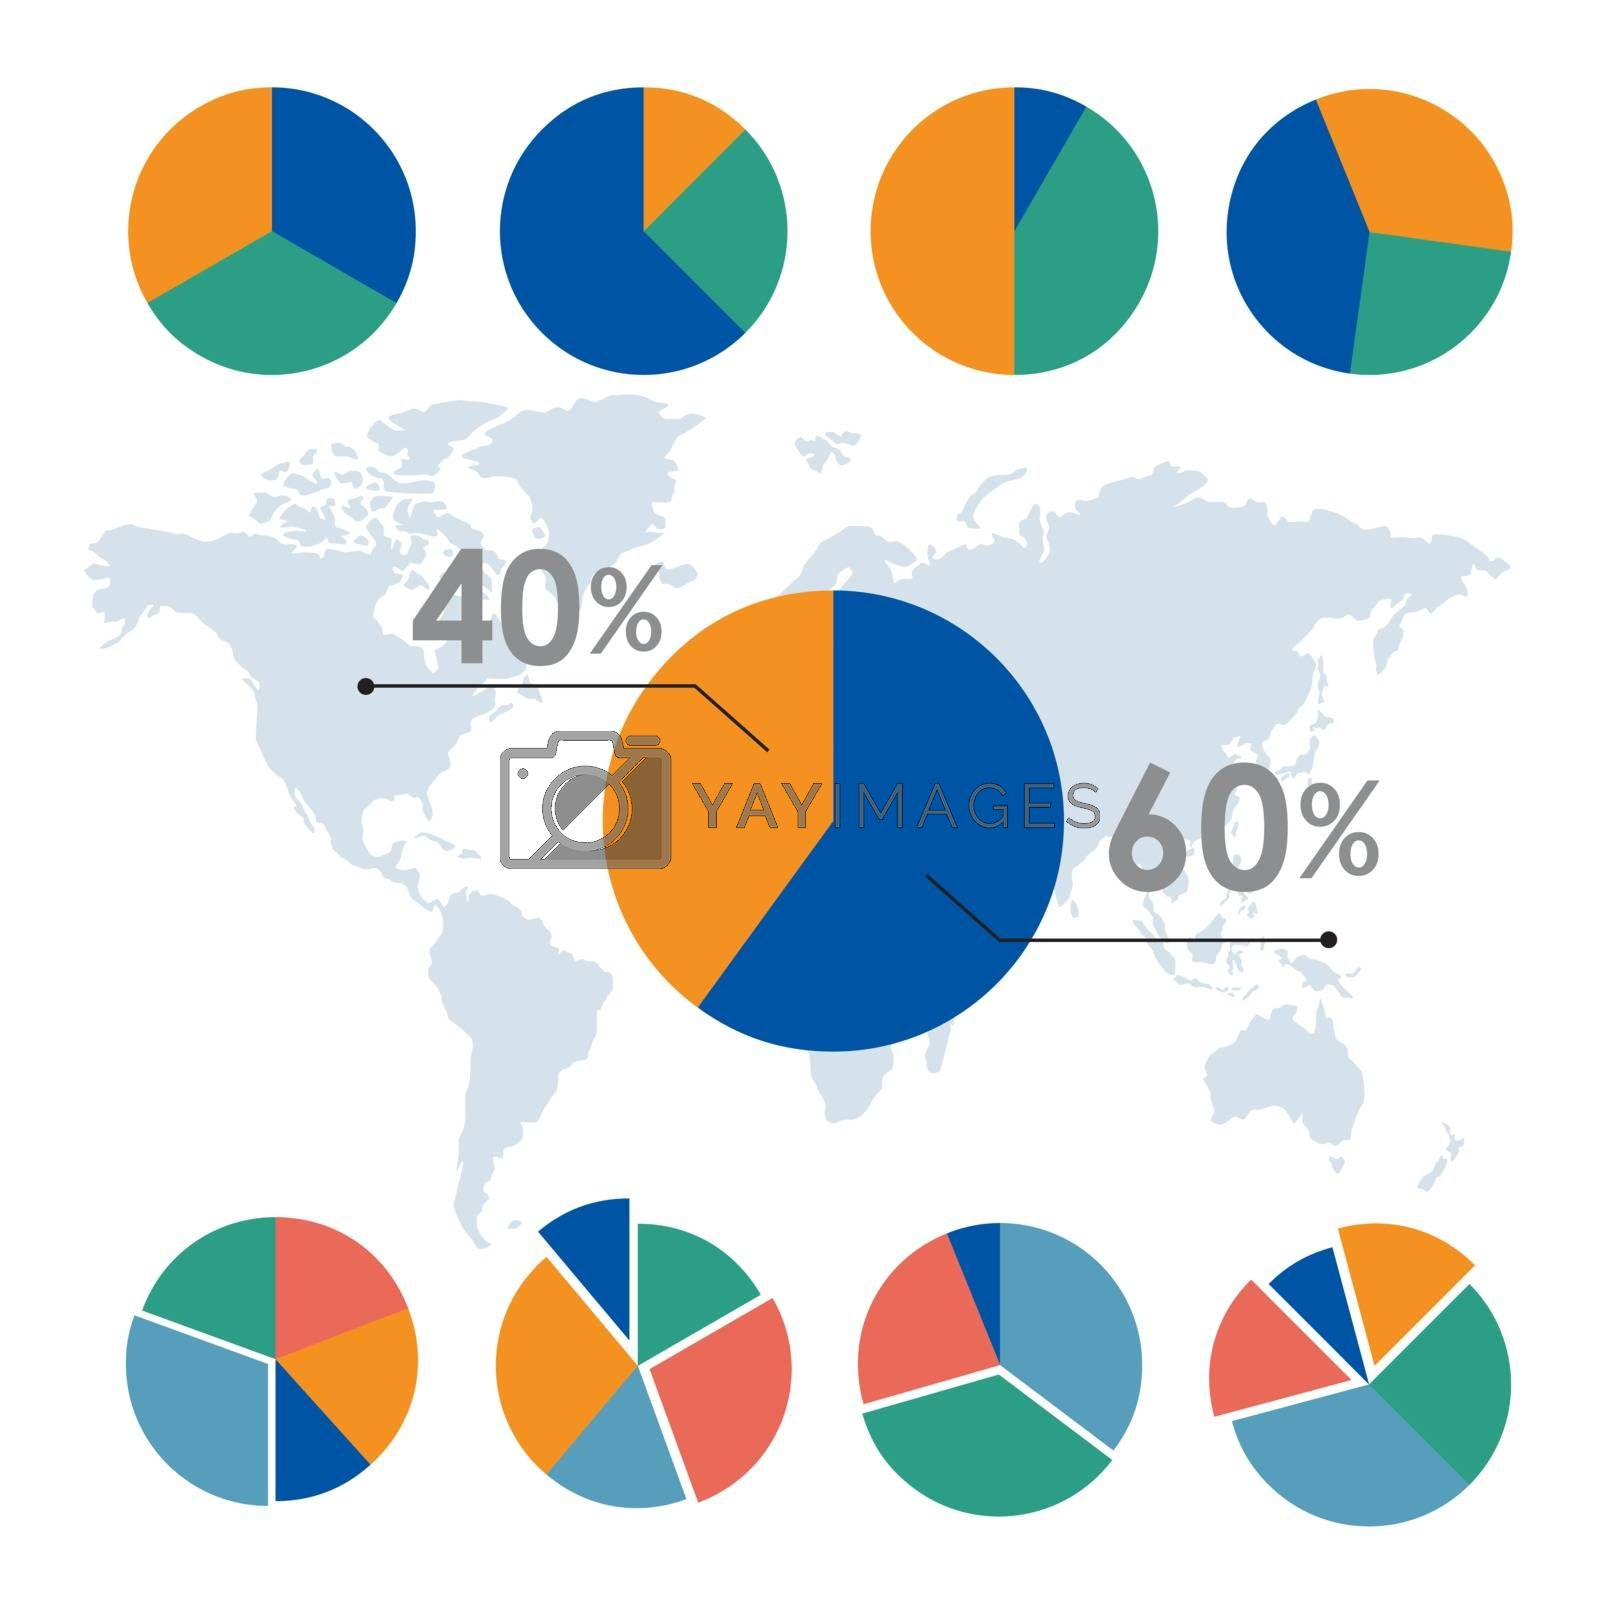 Business data chart and diagram for your documents, reports, presentations and infographic design Vector.